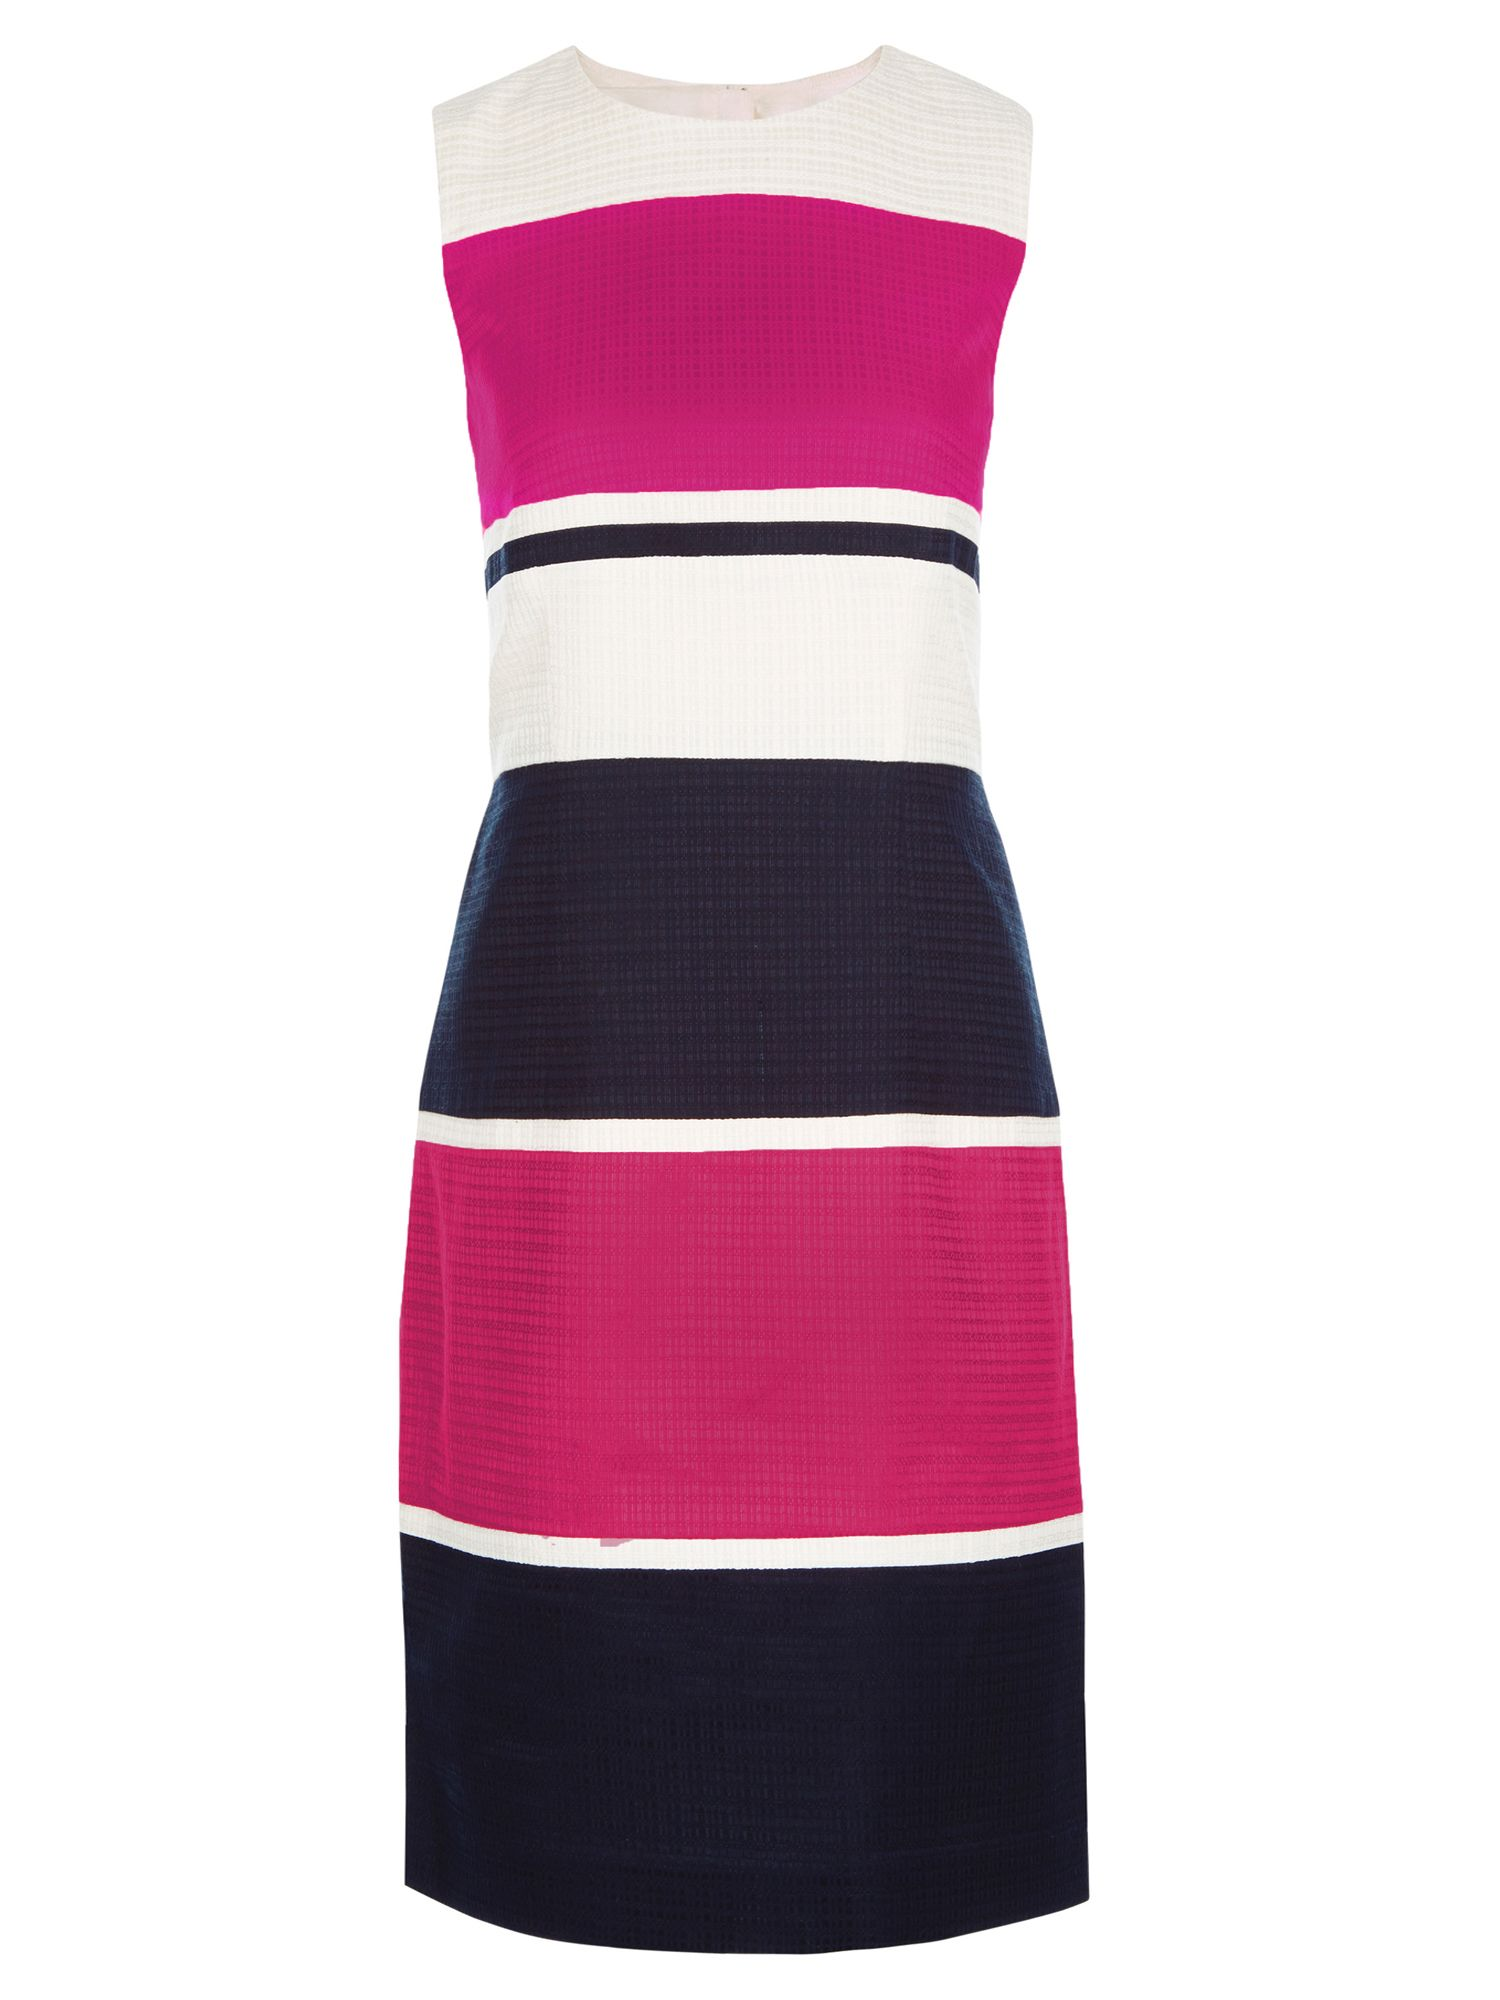 Hobbs Honey Shift Dress, Multi-Coloured